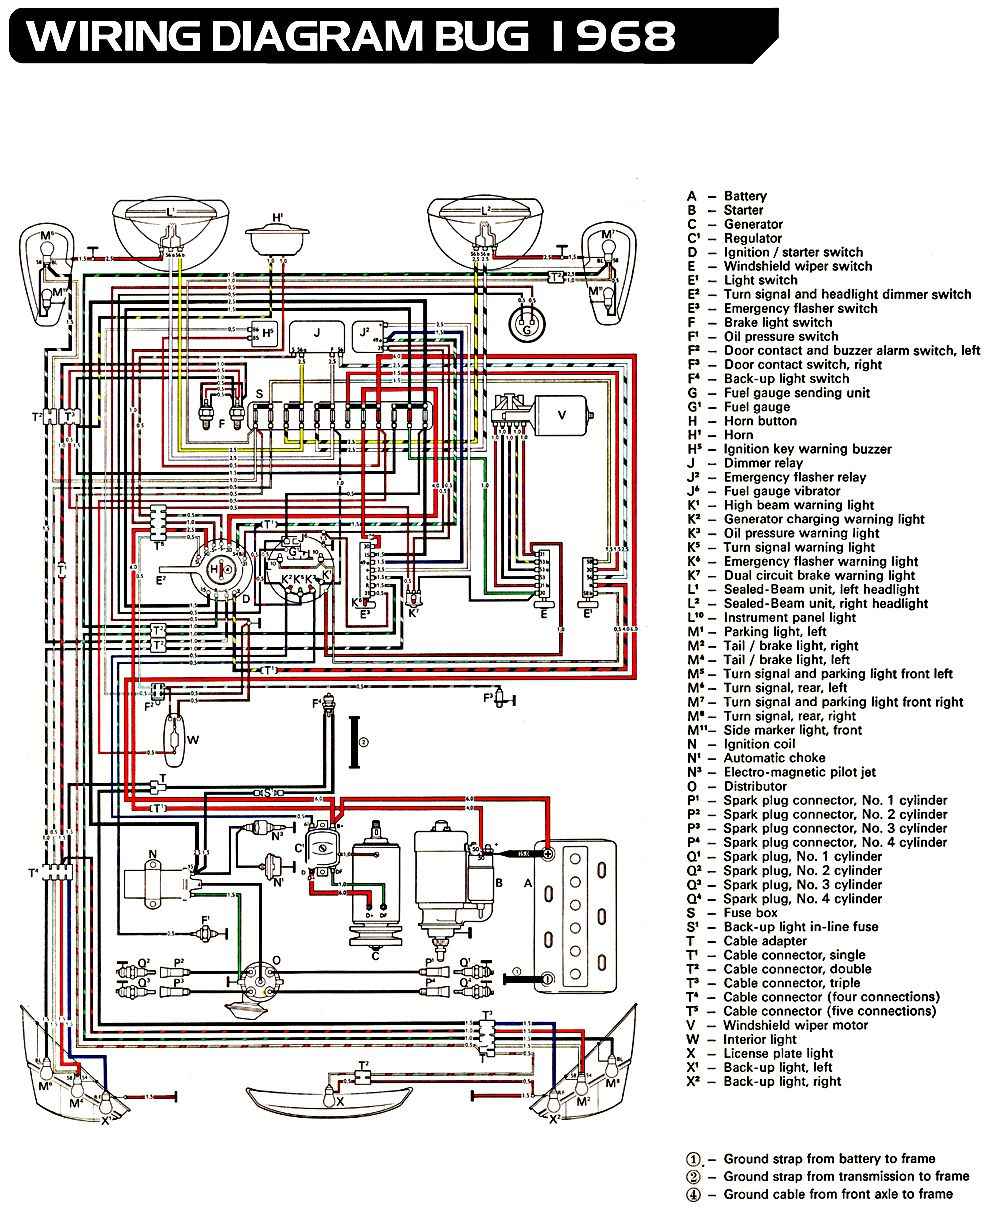 3a1908112d3826270ed5e3be362292bf vw bug ignition wiring diagram 73 vw wiring diagram free 1973 vw super beetle wiring diagram at sewacar.co